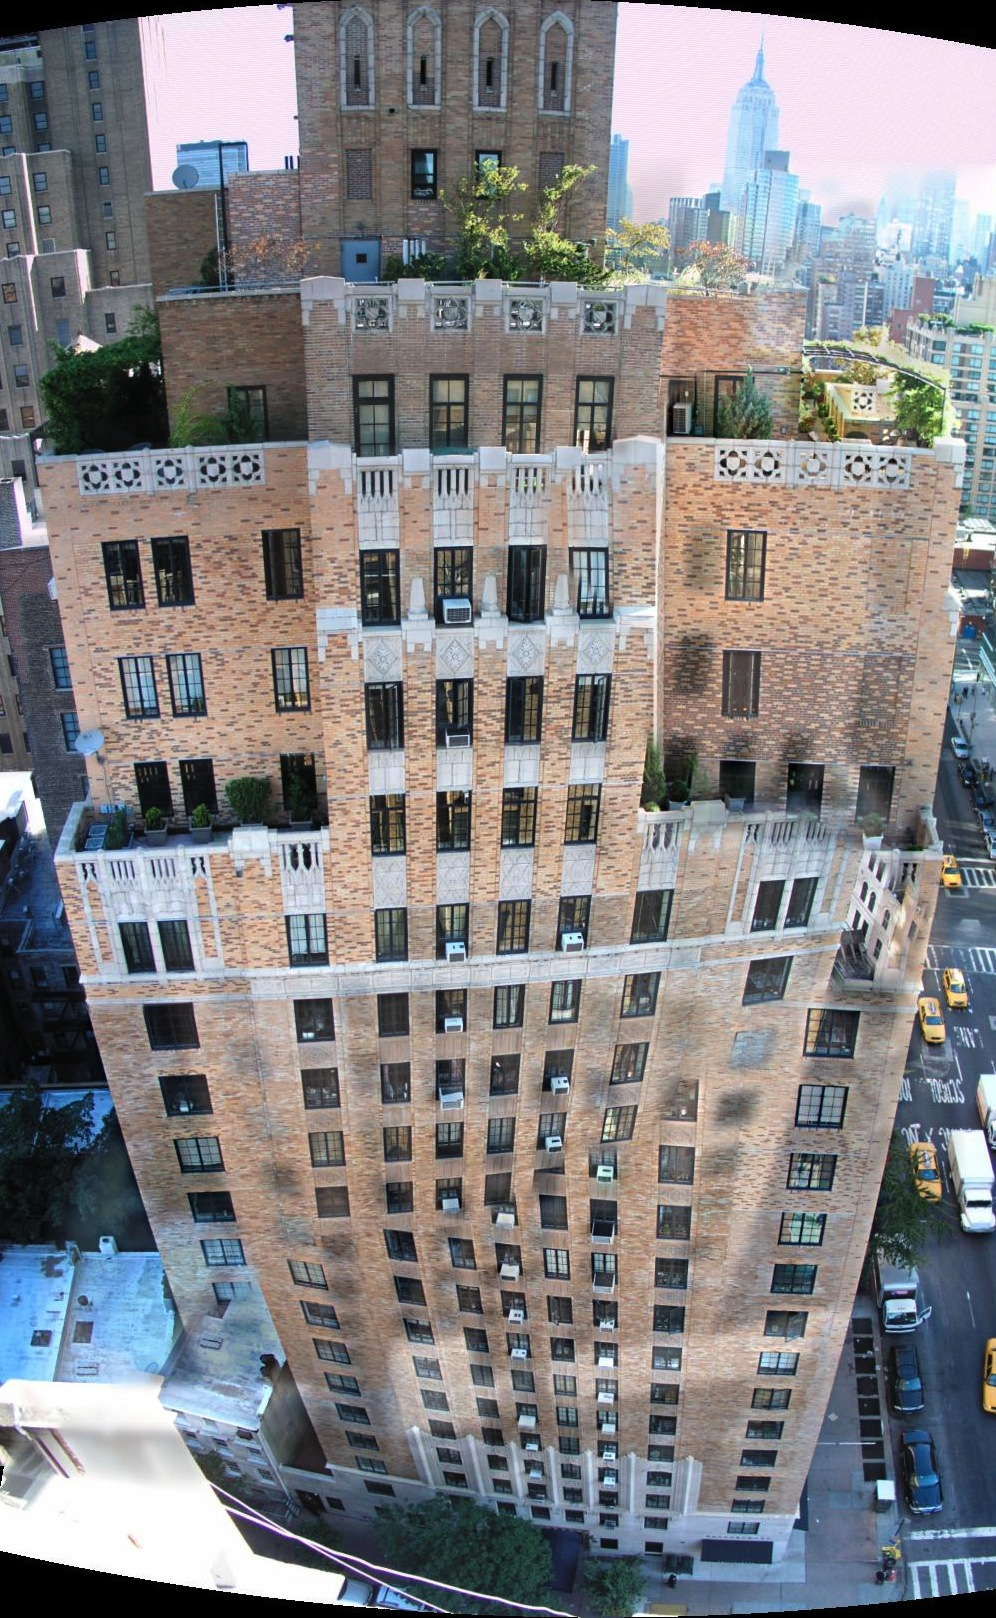 201 West 16th St, panoramic image, residential cooperative apartment building in New York City